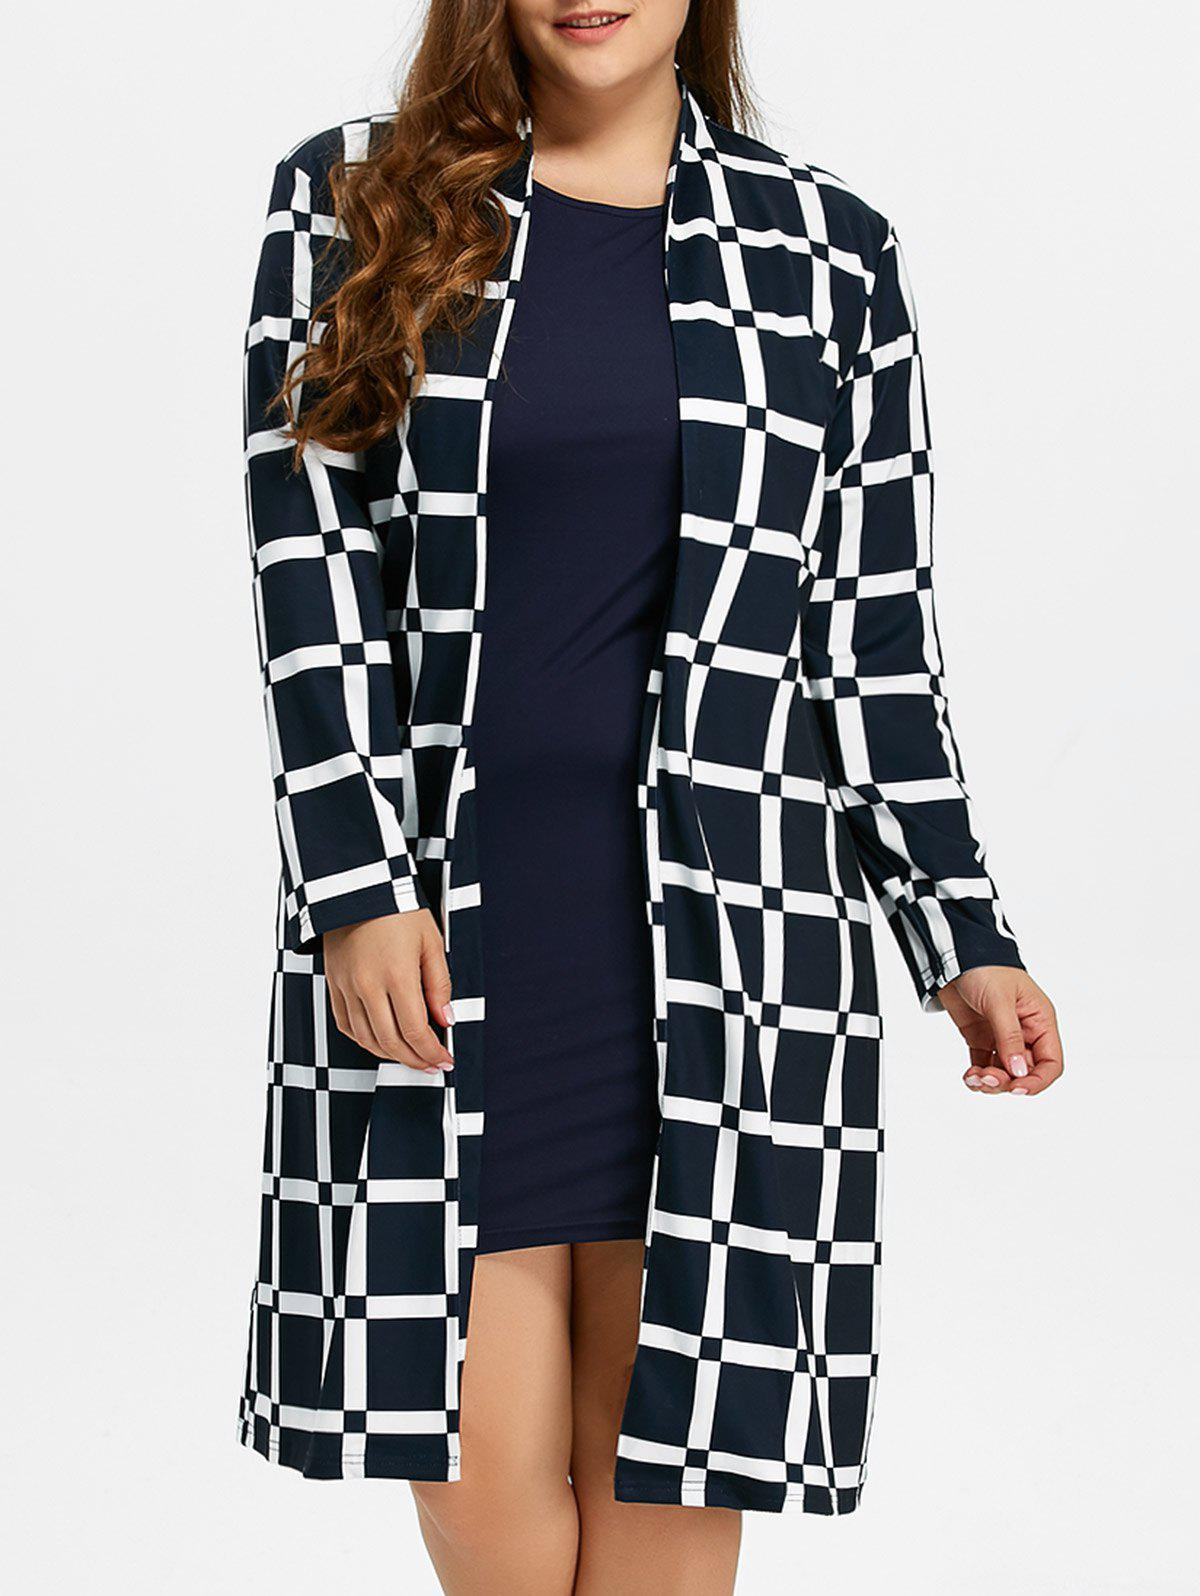 Plus Size Long Grid CoatWOMEN<br><br>Size: 6XL; Color: CHECKED; Clothes Type: Trench; Material: Polyester; Type: Wide-waisted; Shirt Length: Long; Sleeve Length: Full; Collar: Collarless; Pattern Type: Plaid; Embellishment: Vintage; Style: Streetwear; Season: Fall,Spring,Winter; With Belt: No; Weight: 0.670kg; Package Contents: 1 x Coat;